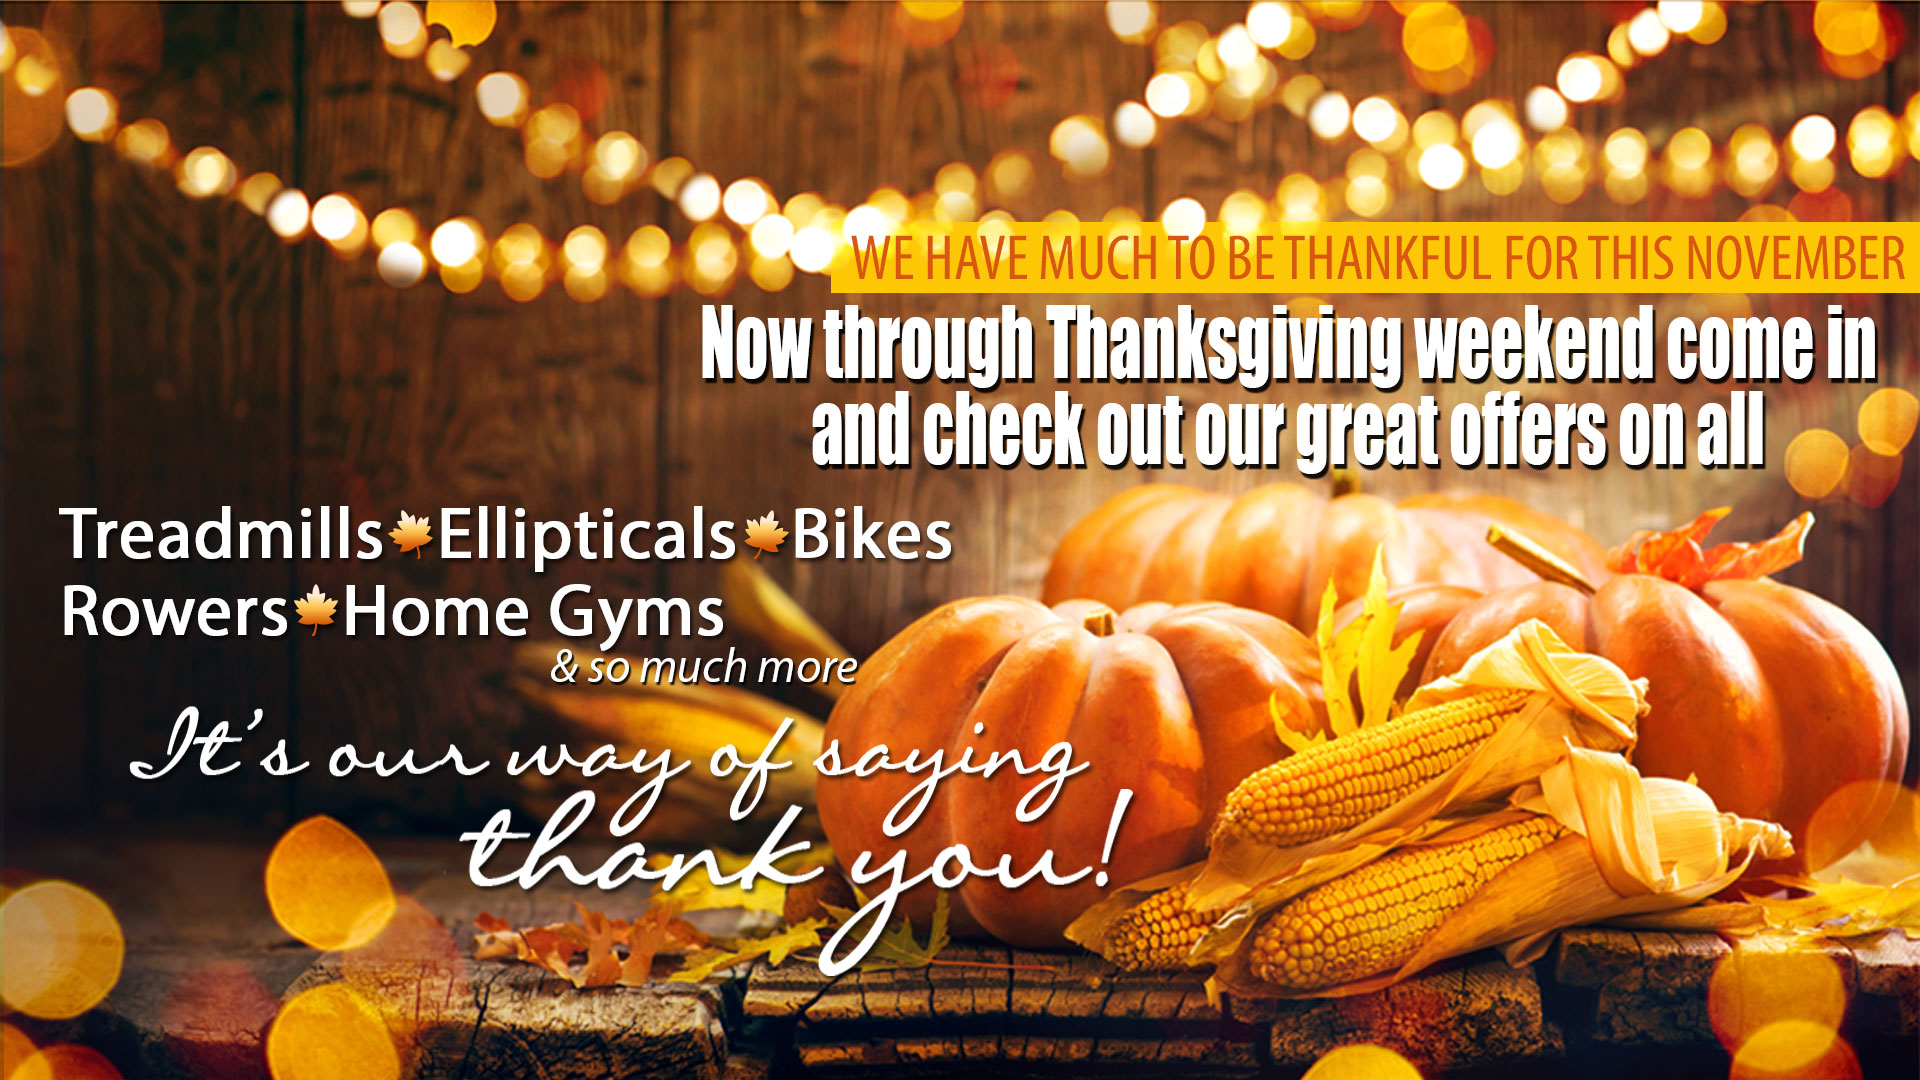 A-We are thankful